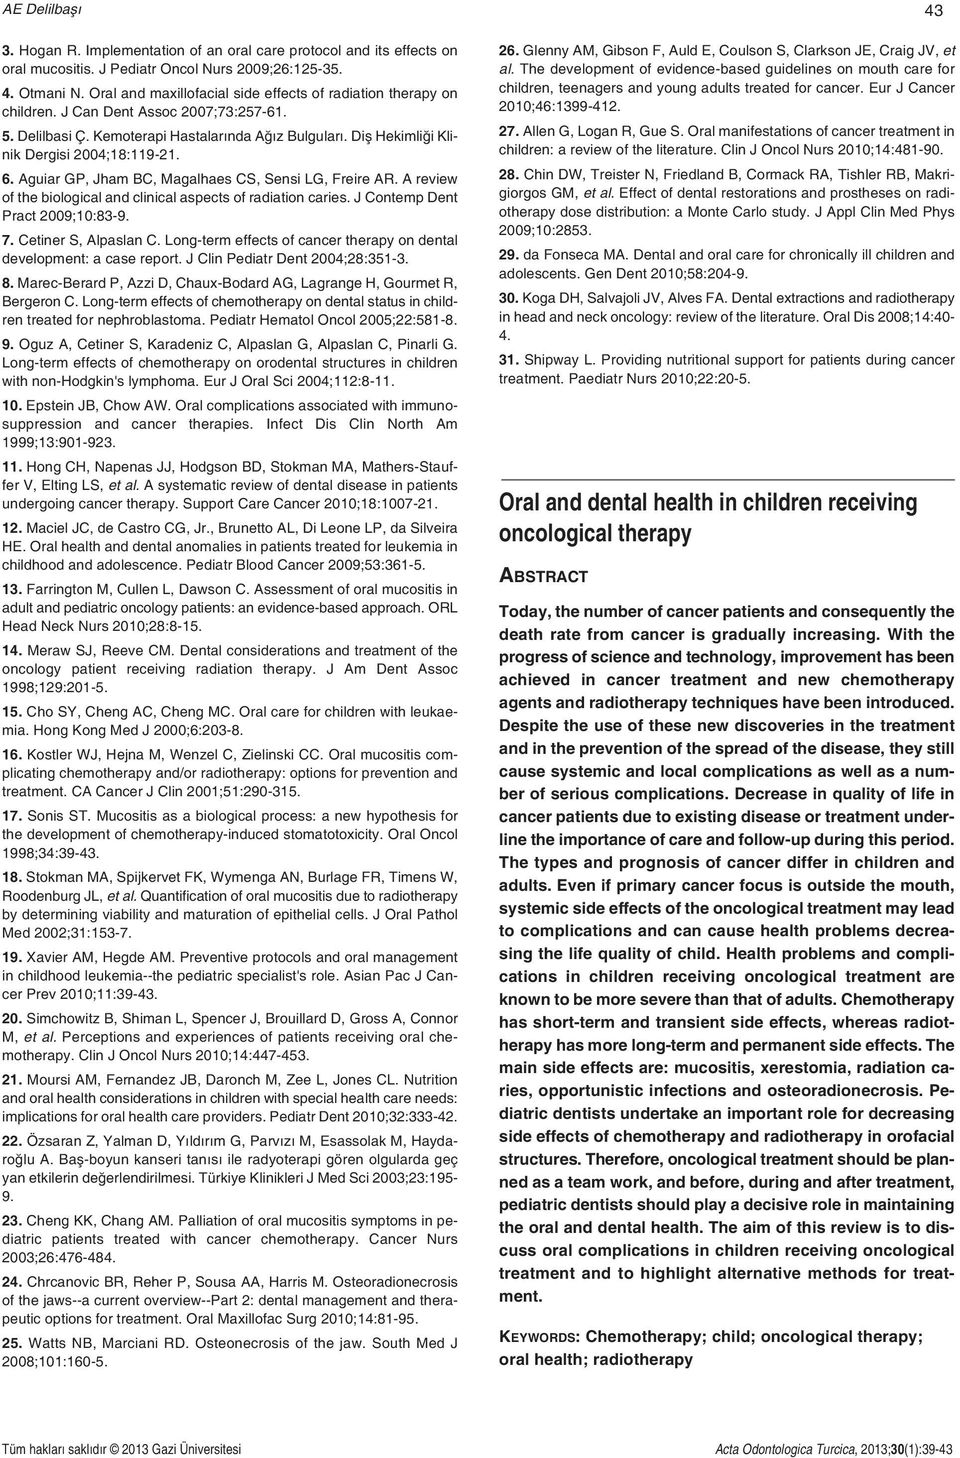 Diş Hekimliği Klinik Dergisi 2004;18:119-21. 6. Aguiar GP, Jham BC, Magalhaes CS, Sensi LG, Freire AR. A review of the biological and clinical aspects of radiation caries.